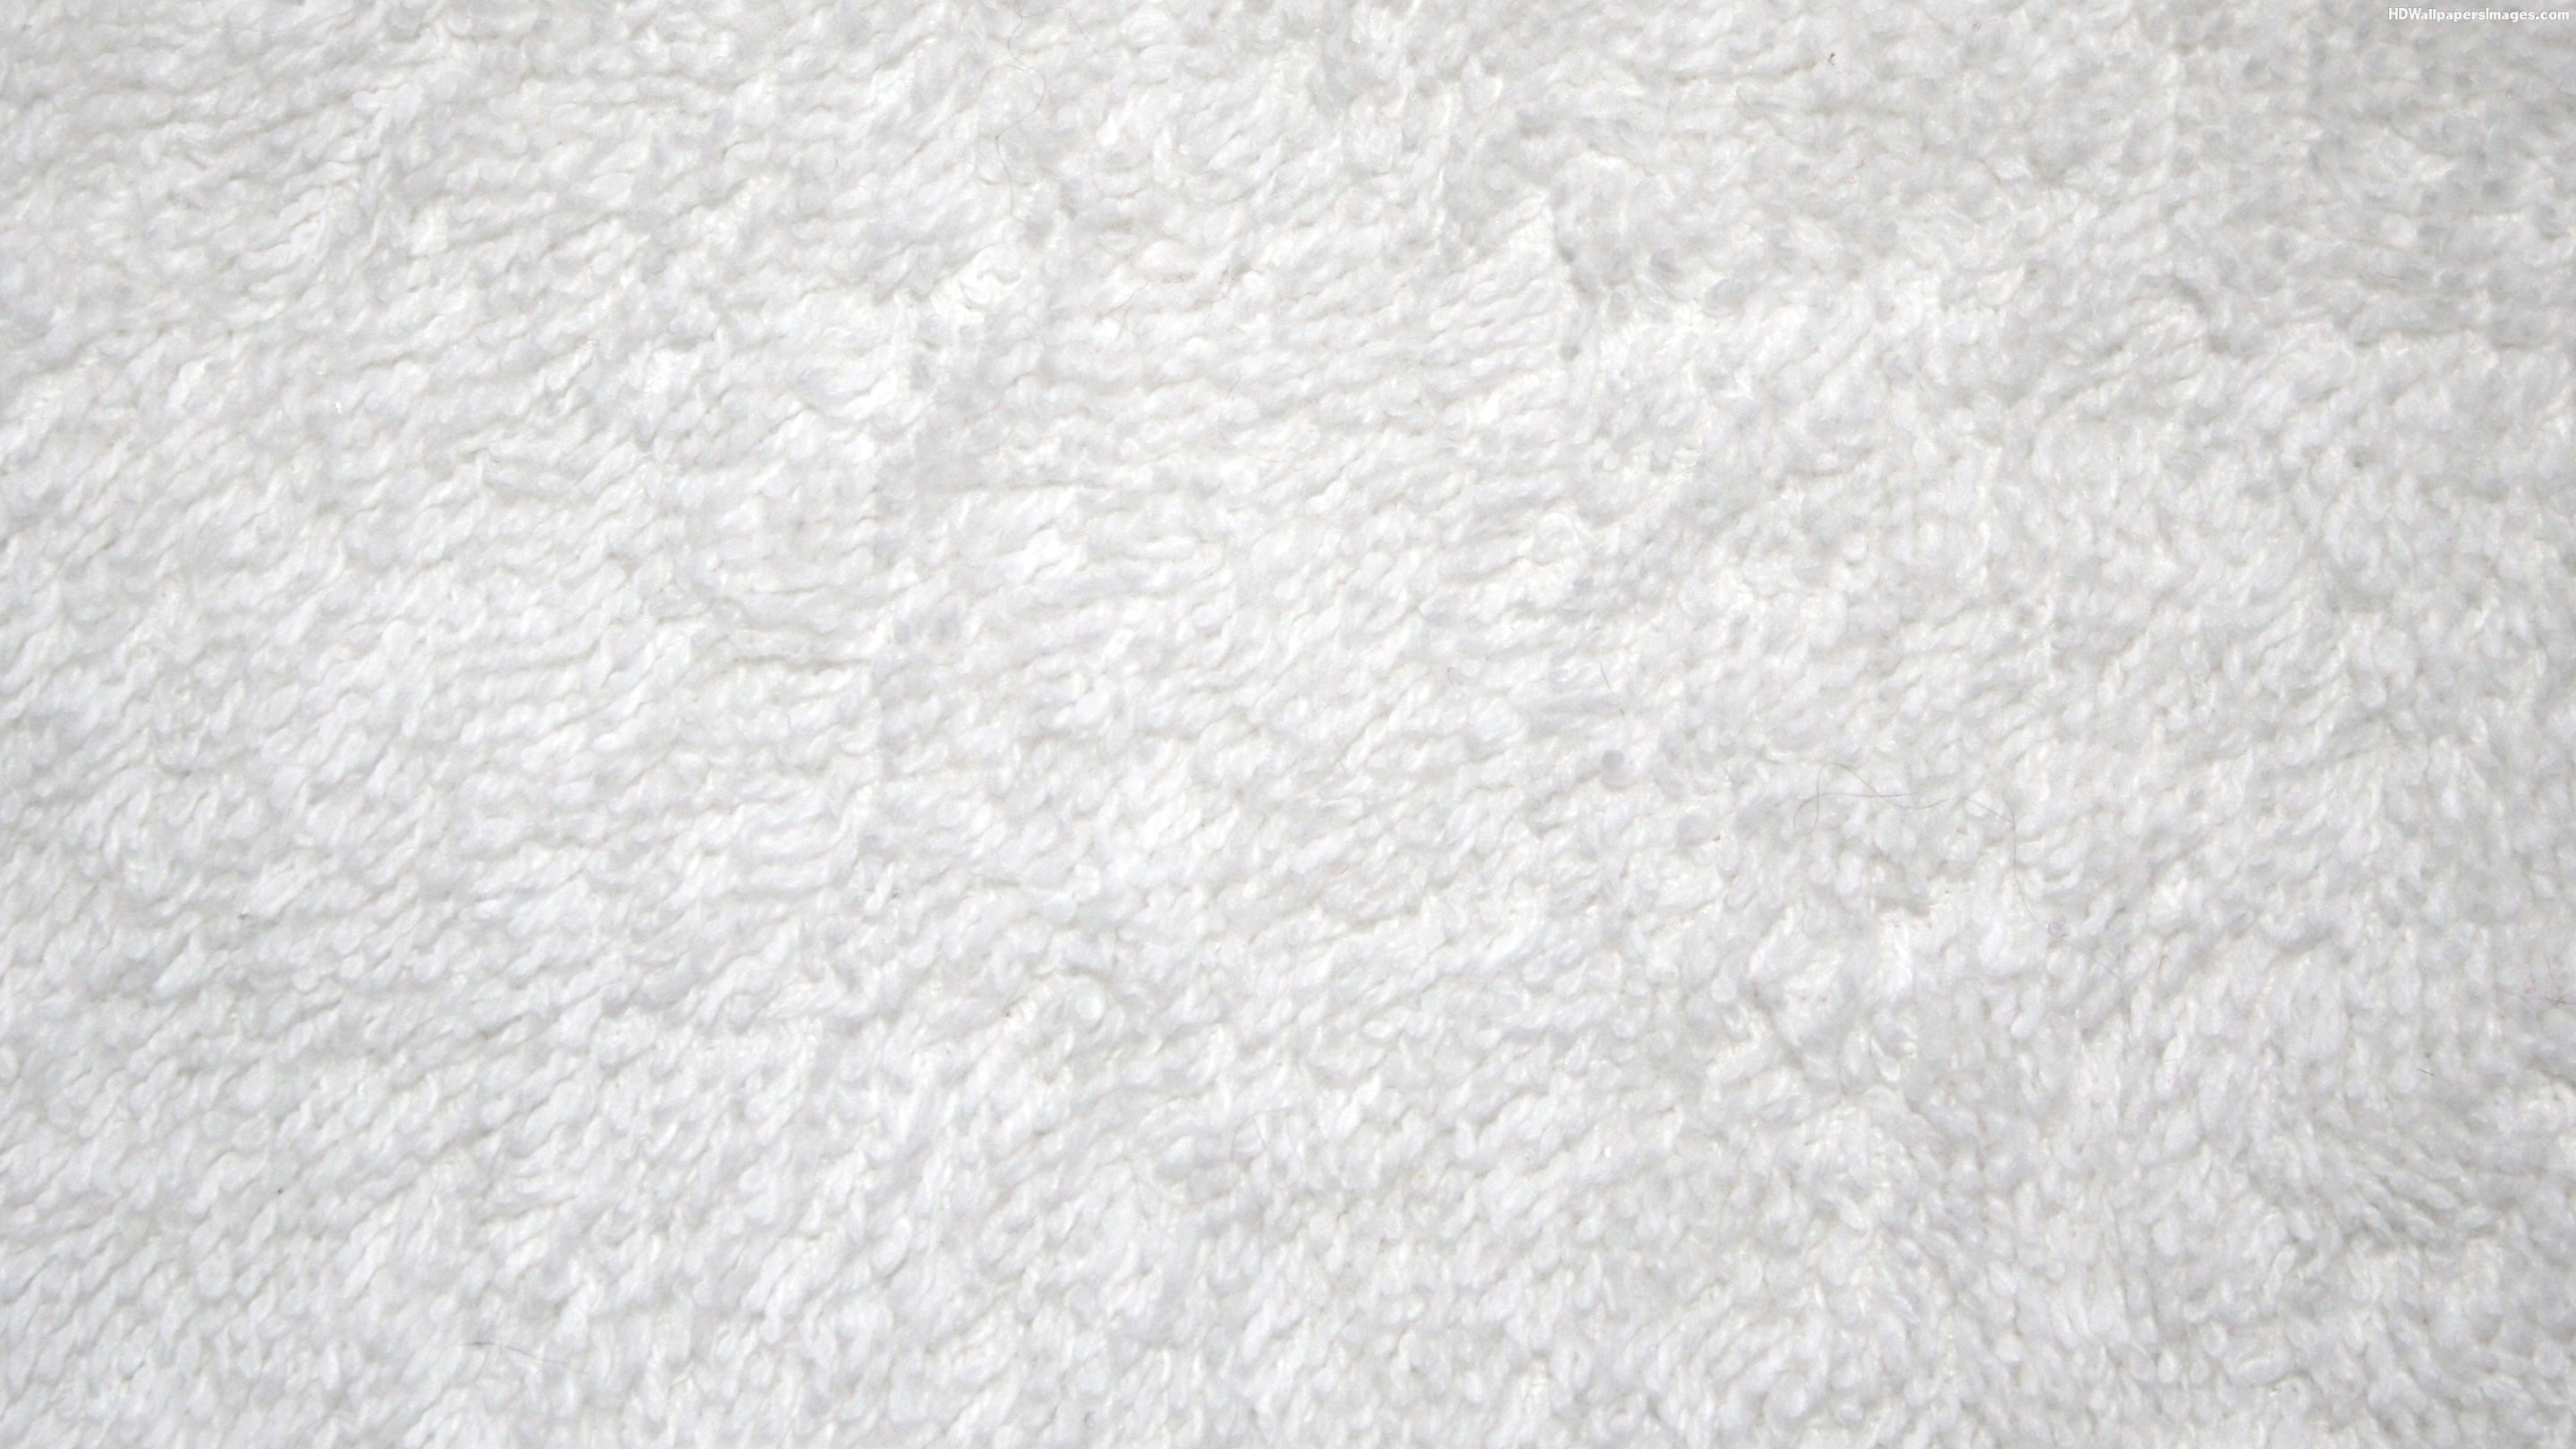 white carpet white-carpet-textures-images OXWDLSV